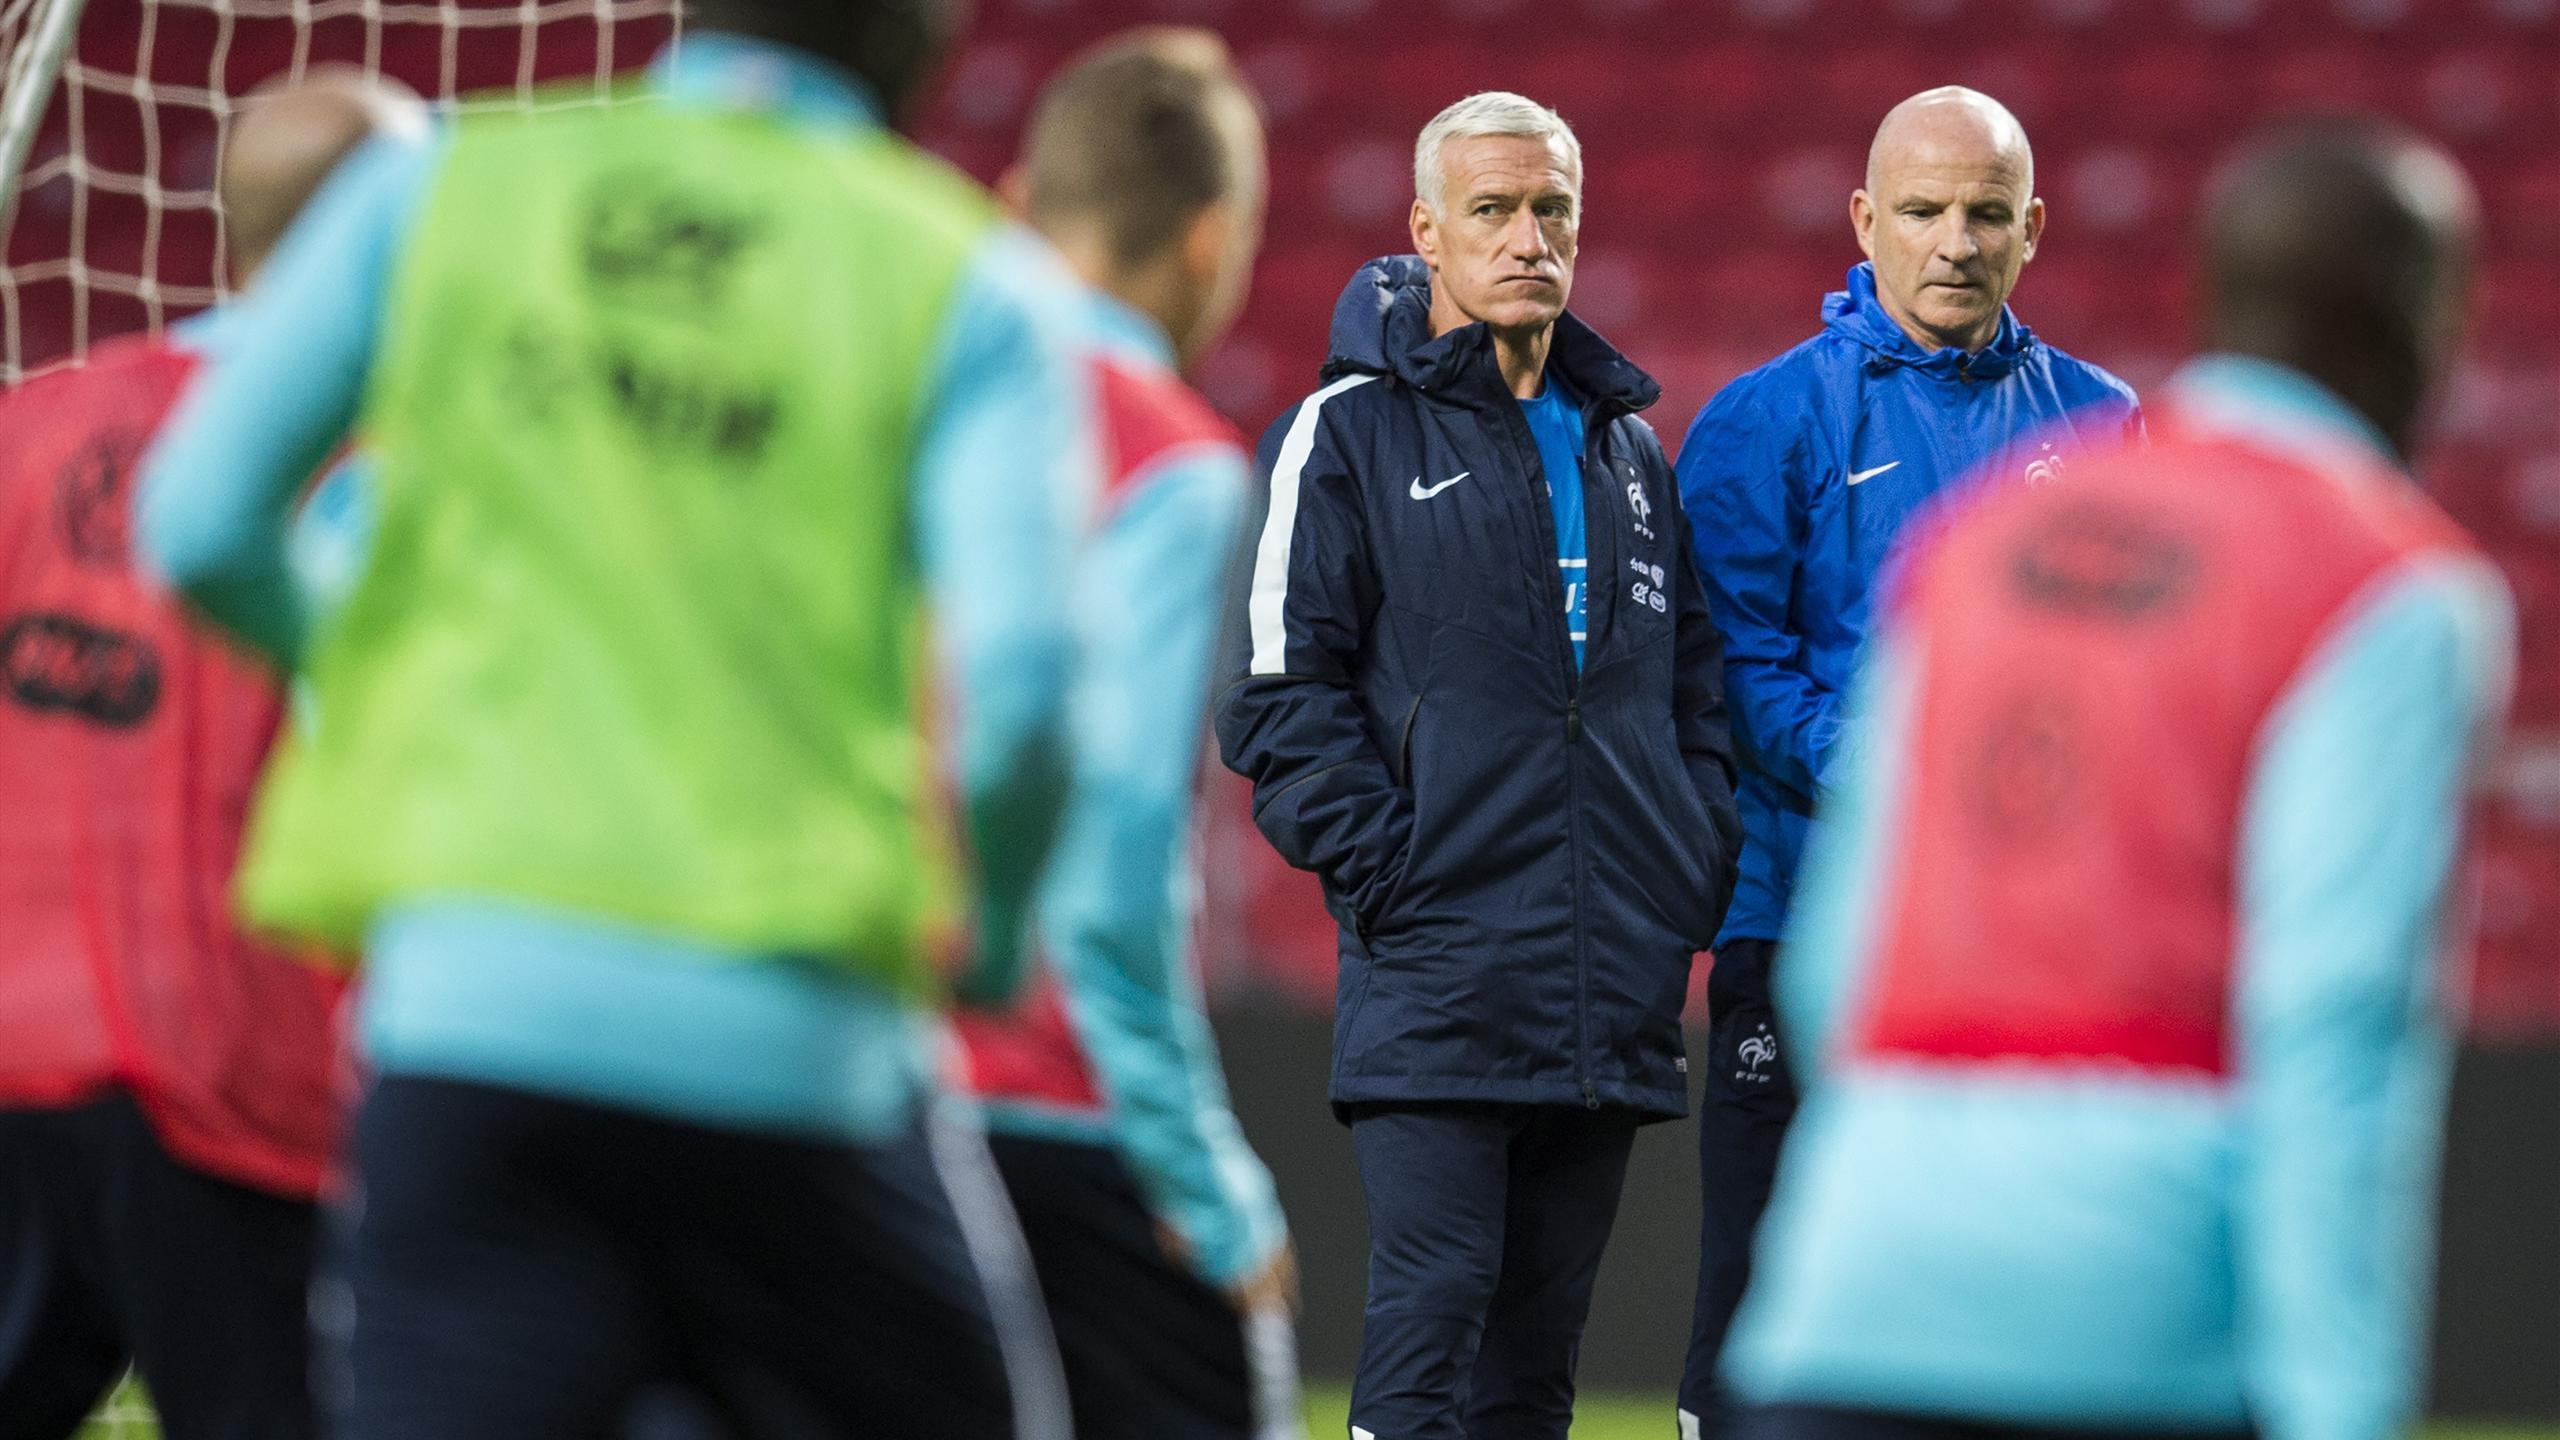 Didier Deschamps watches France in training.